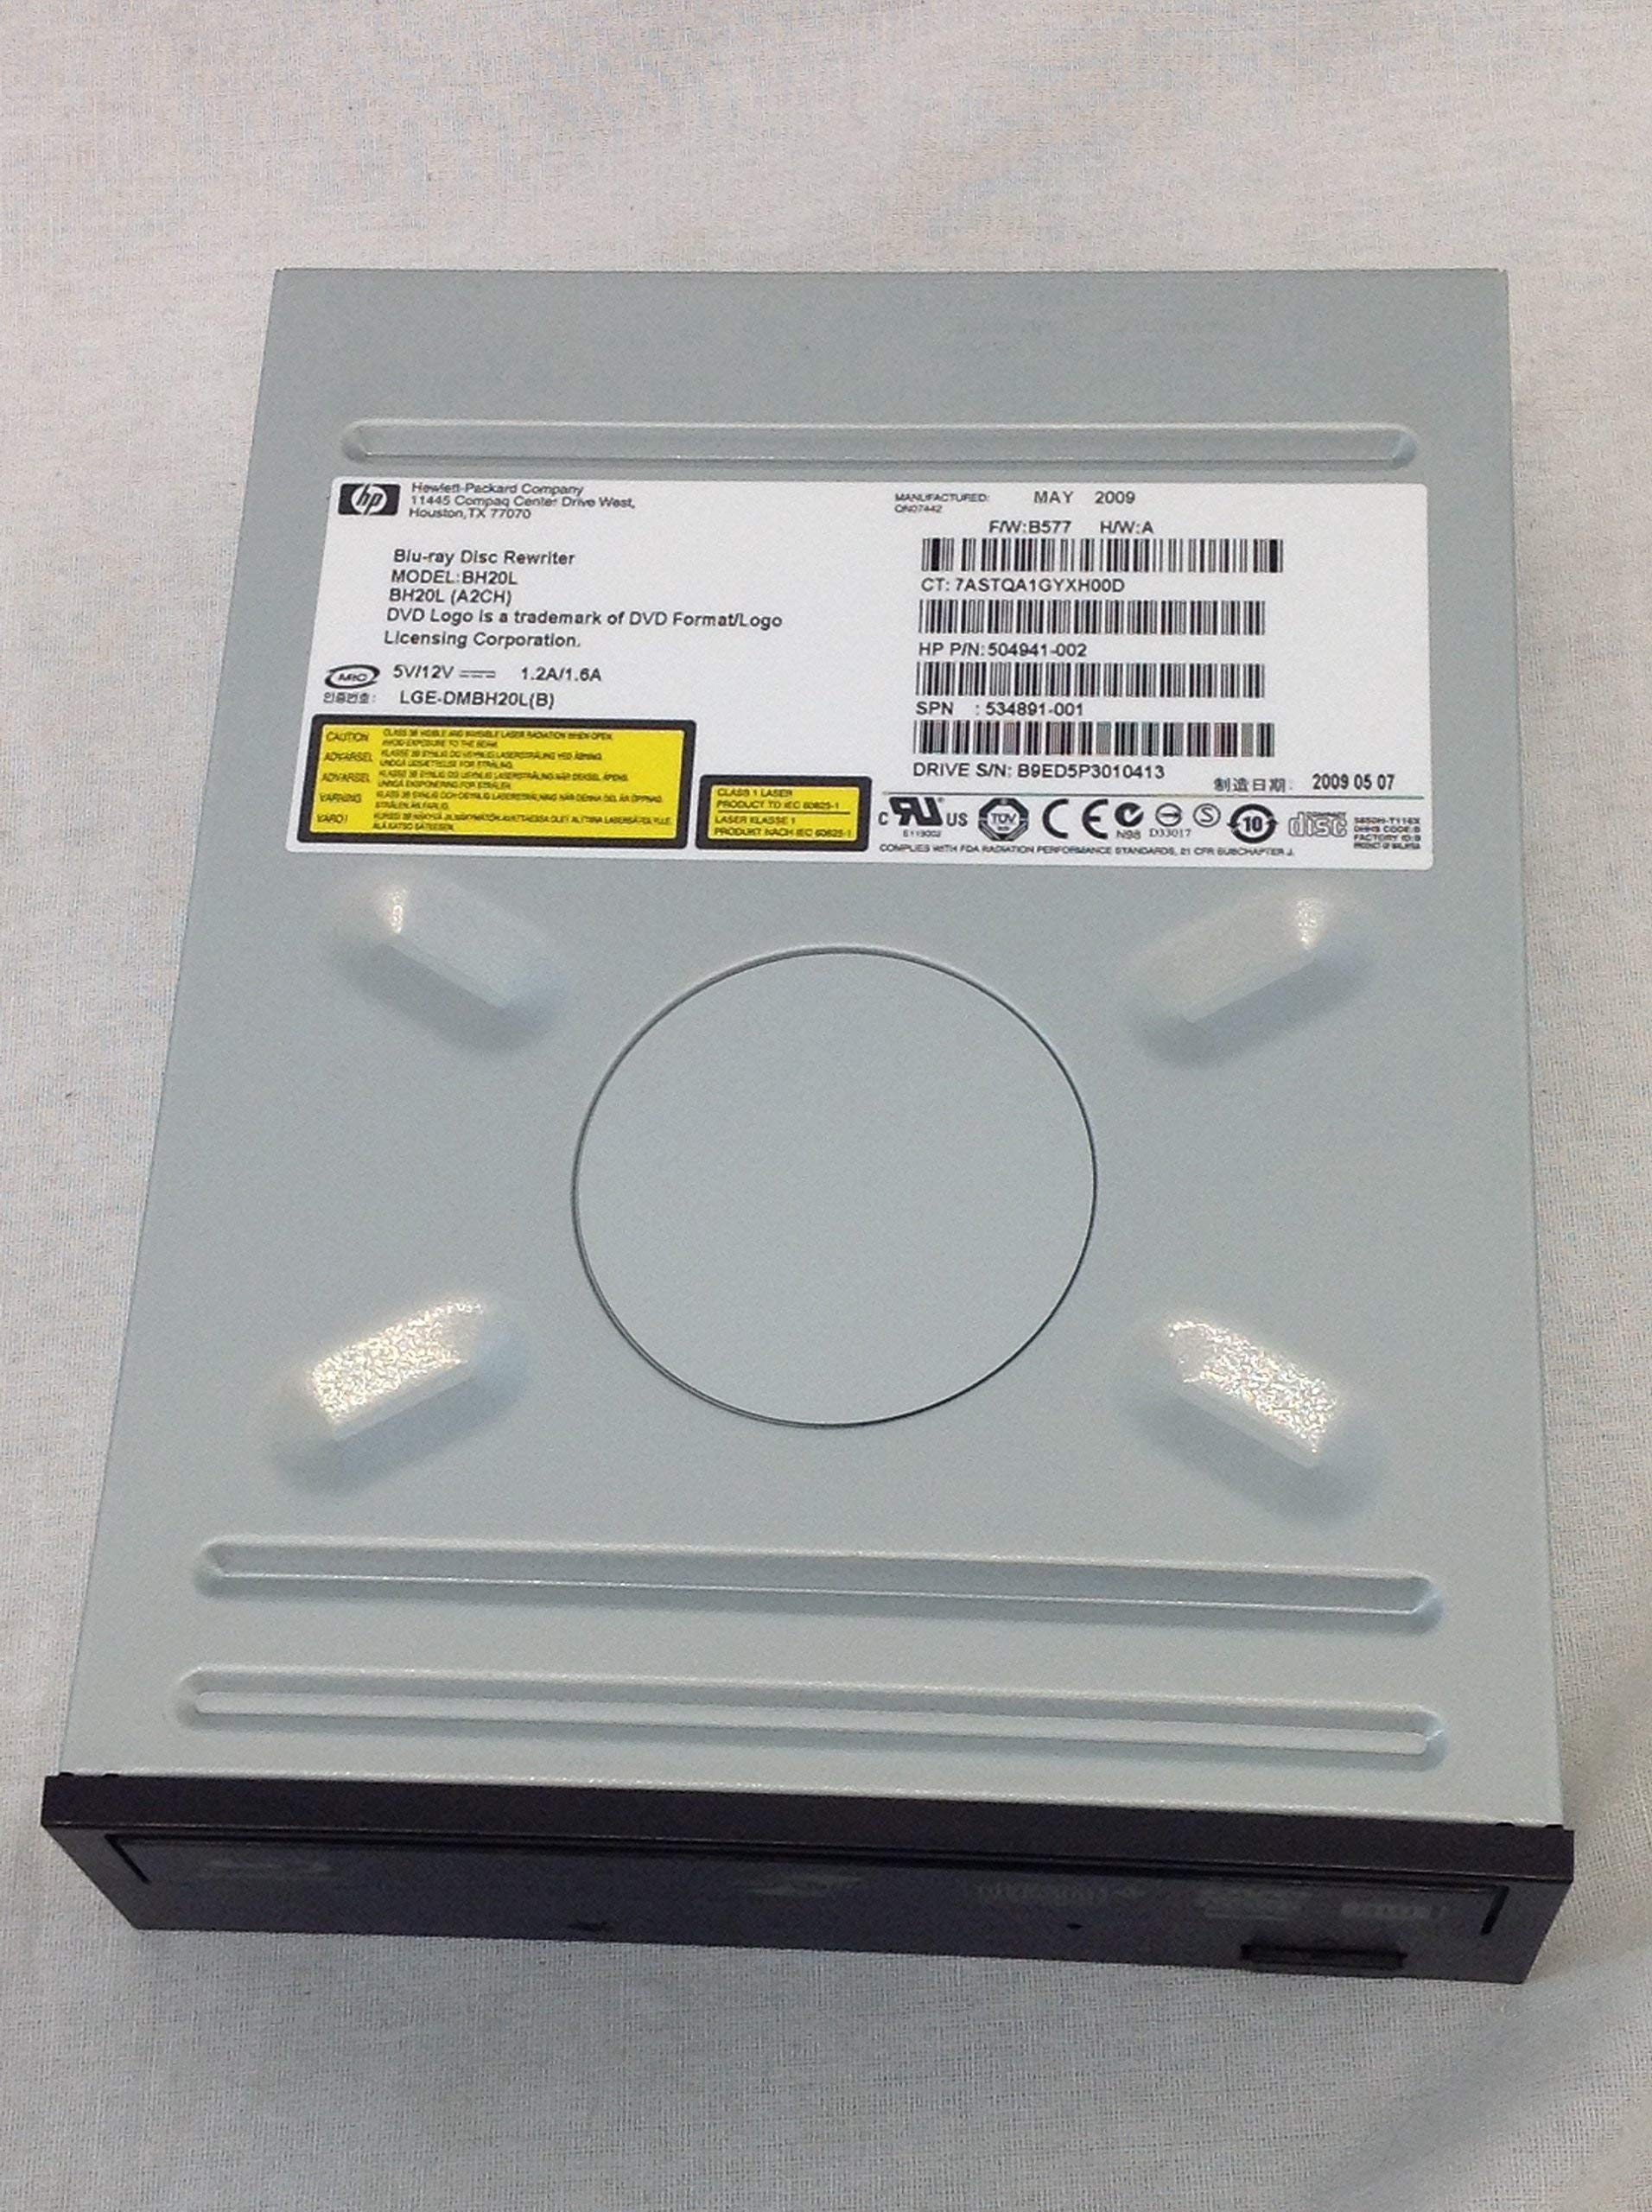 536540-001 504941-001 HP 6X SATA BLURAY DISK WRITER SMD OPTICAL DRIVE(JET BLACK) by HP